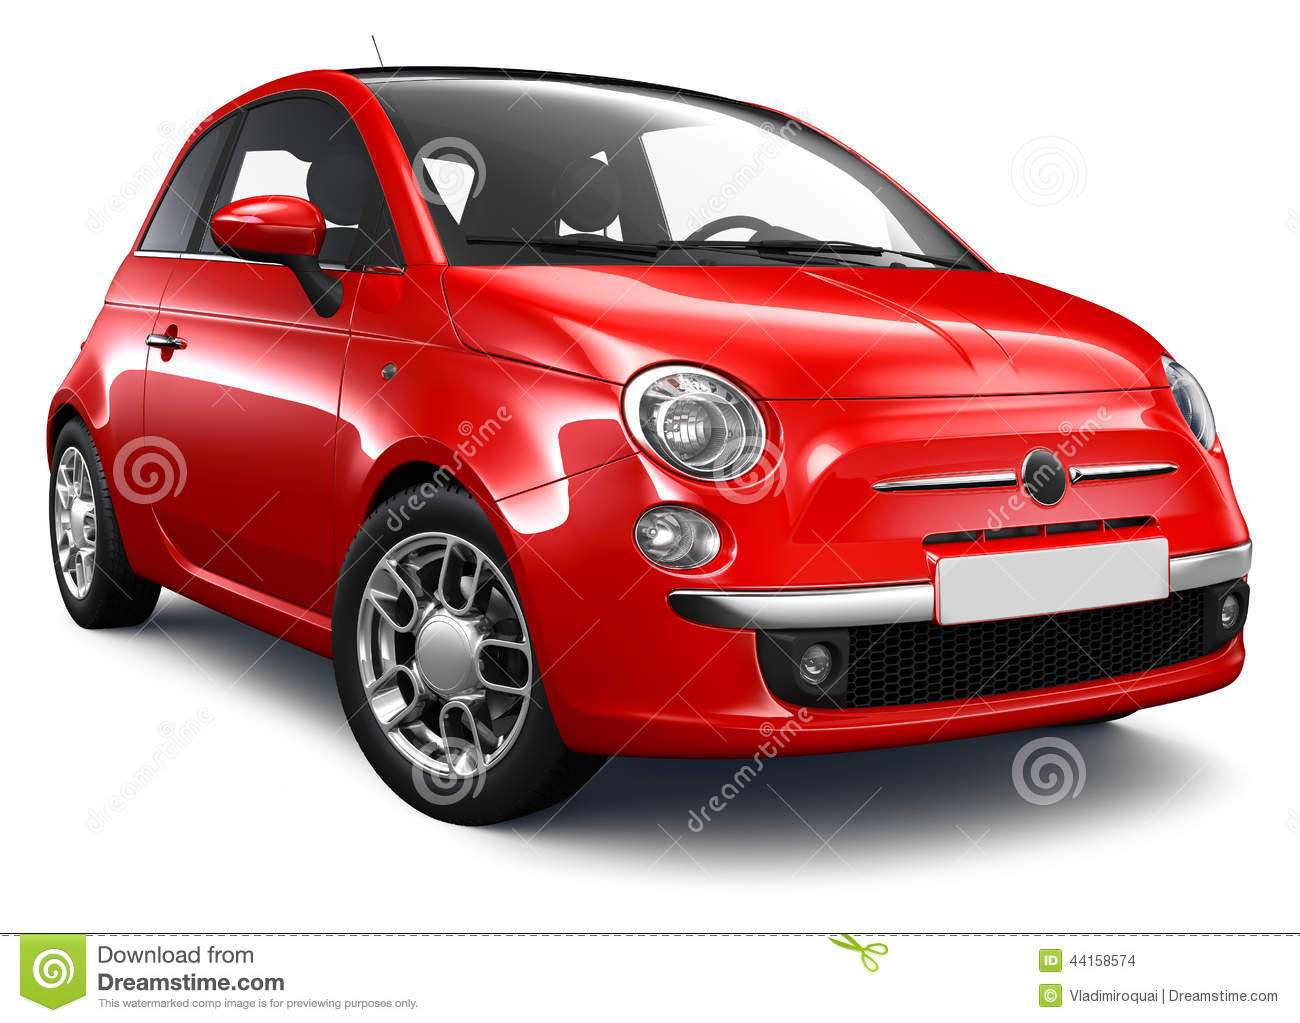 Motor Mouth 20020552 together with KTM X2 HYBRID SNOWMOBILE ATV likewise Article 3719 likewise Royalty Free Stock Photo Car Service Repair Icons Image11986065 further Isometric vehicle illustration. on electric car illustration